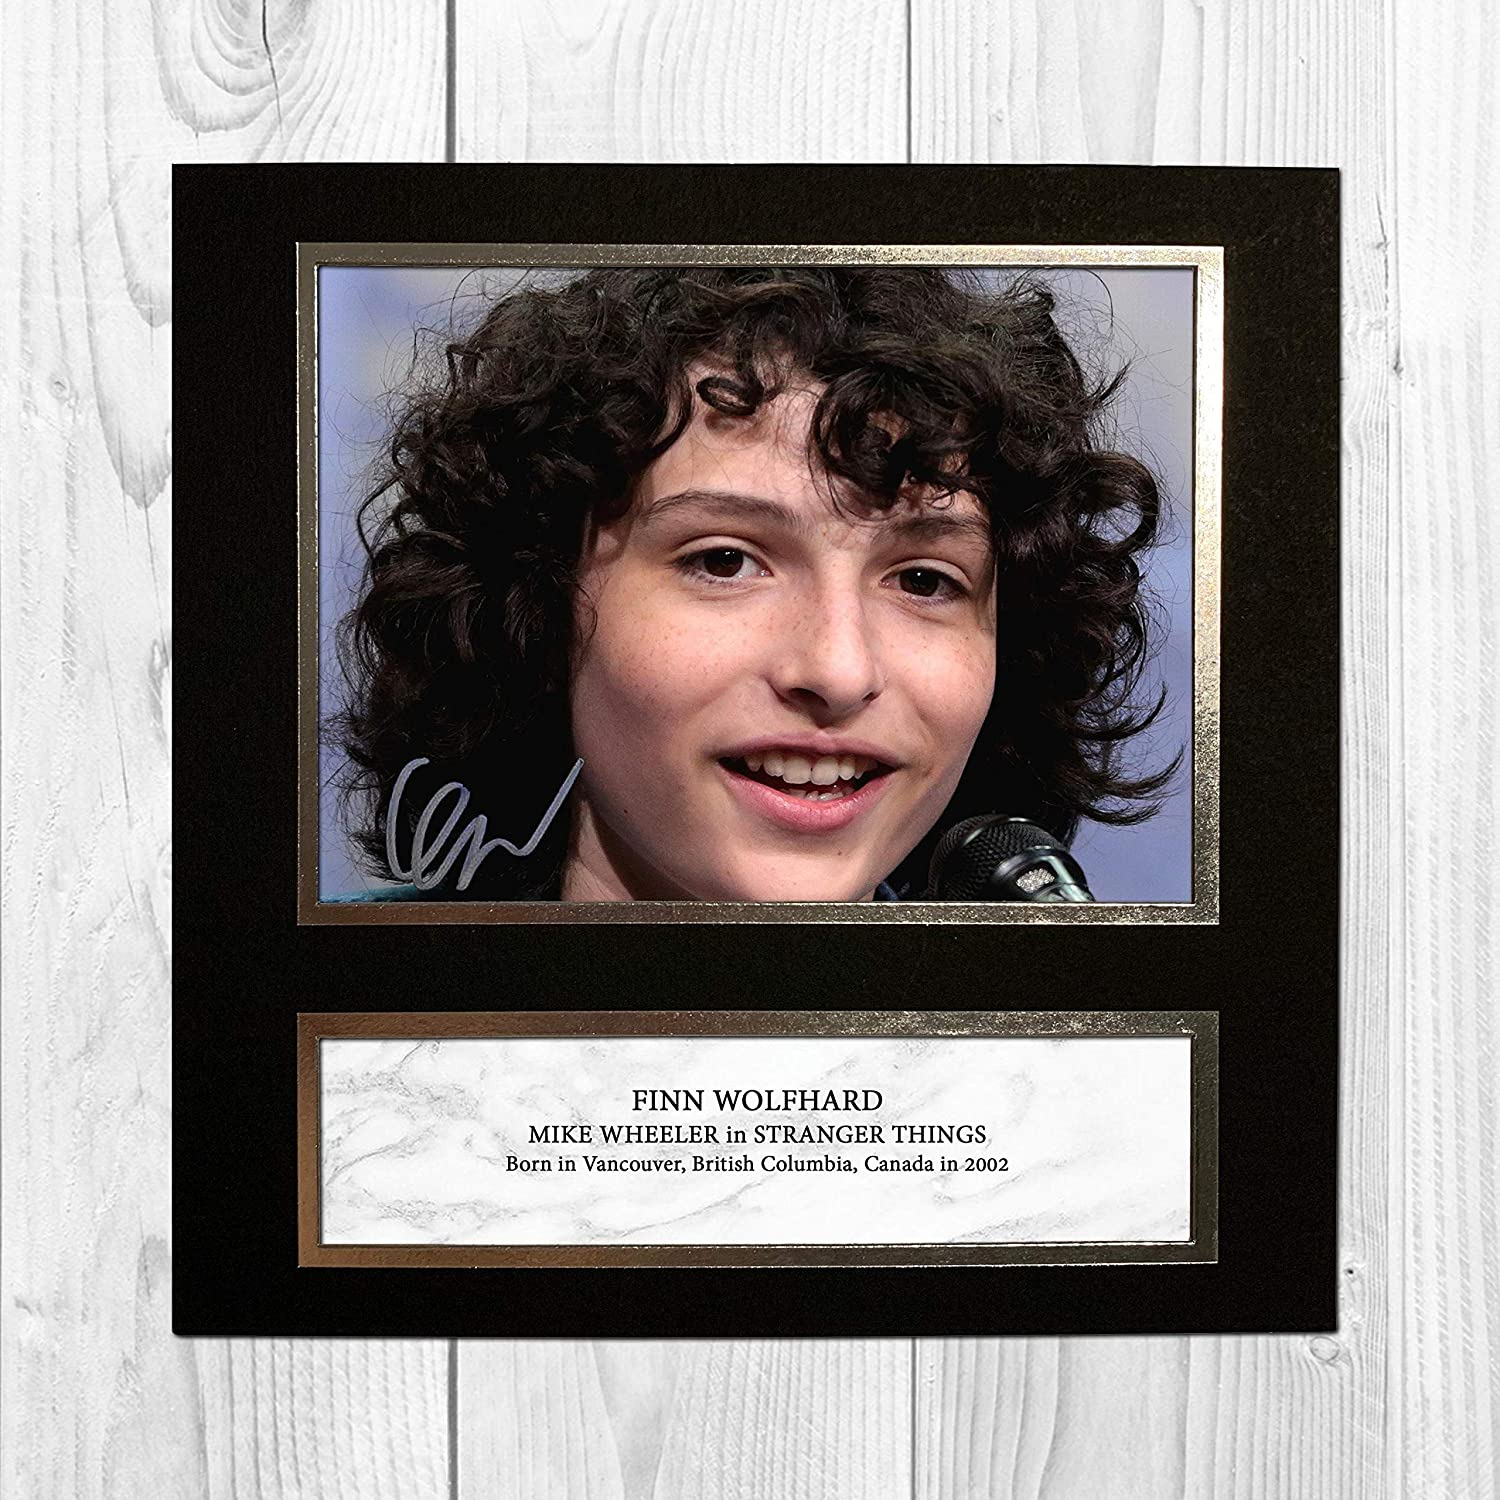 Finn Wolfhard - Stranger Things 1 NDW Signed Reproduction Autographed Wall Art - 10 Inch x 10 Inch Print (Card Mounted): Amazon.es: Hogar